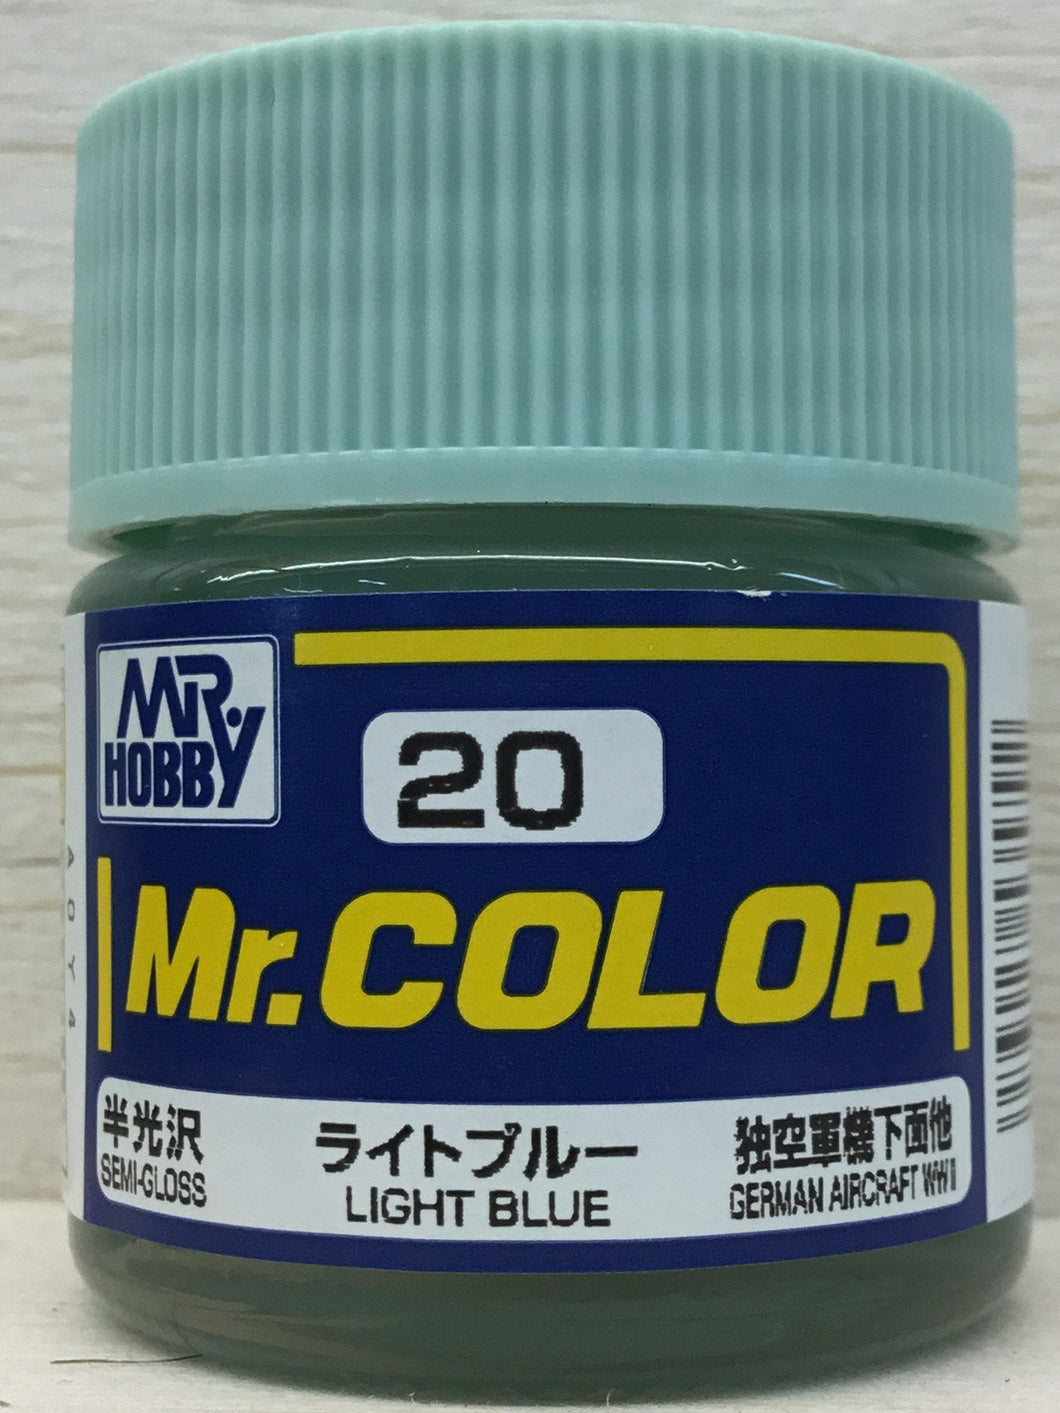 GUNZE MR COLOR C20 SEMI GLOSS LIGHT BLUE